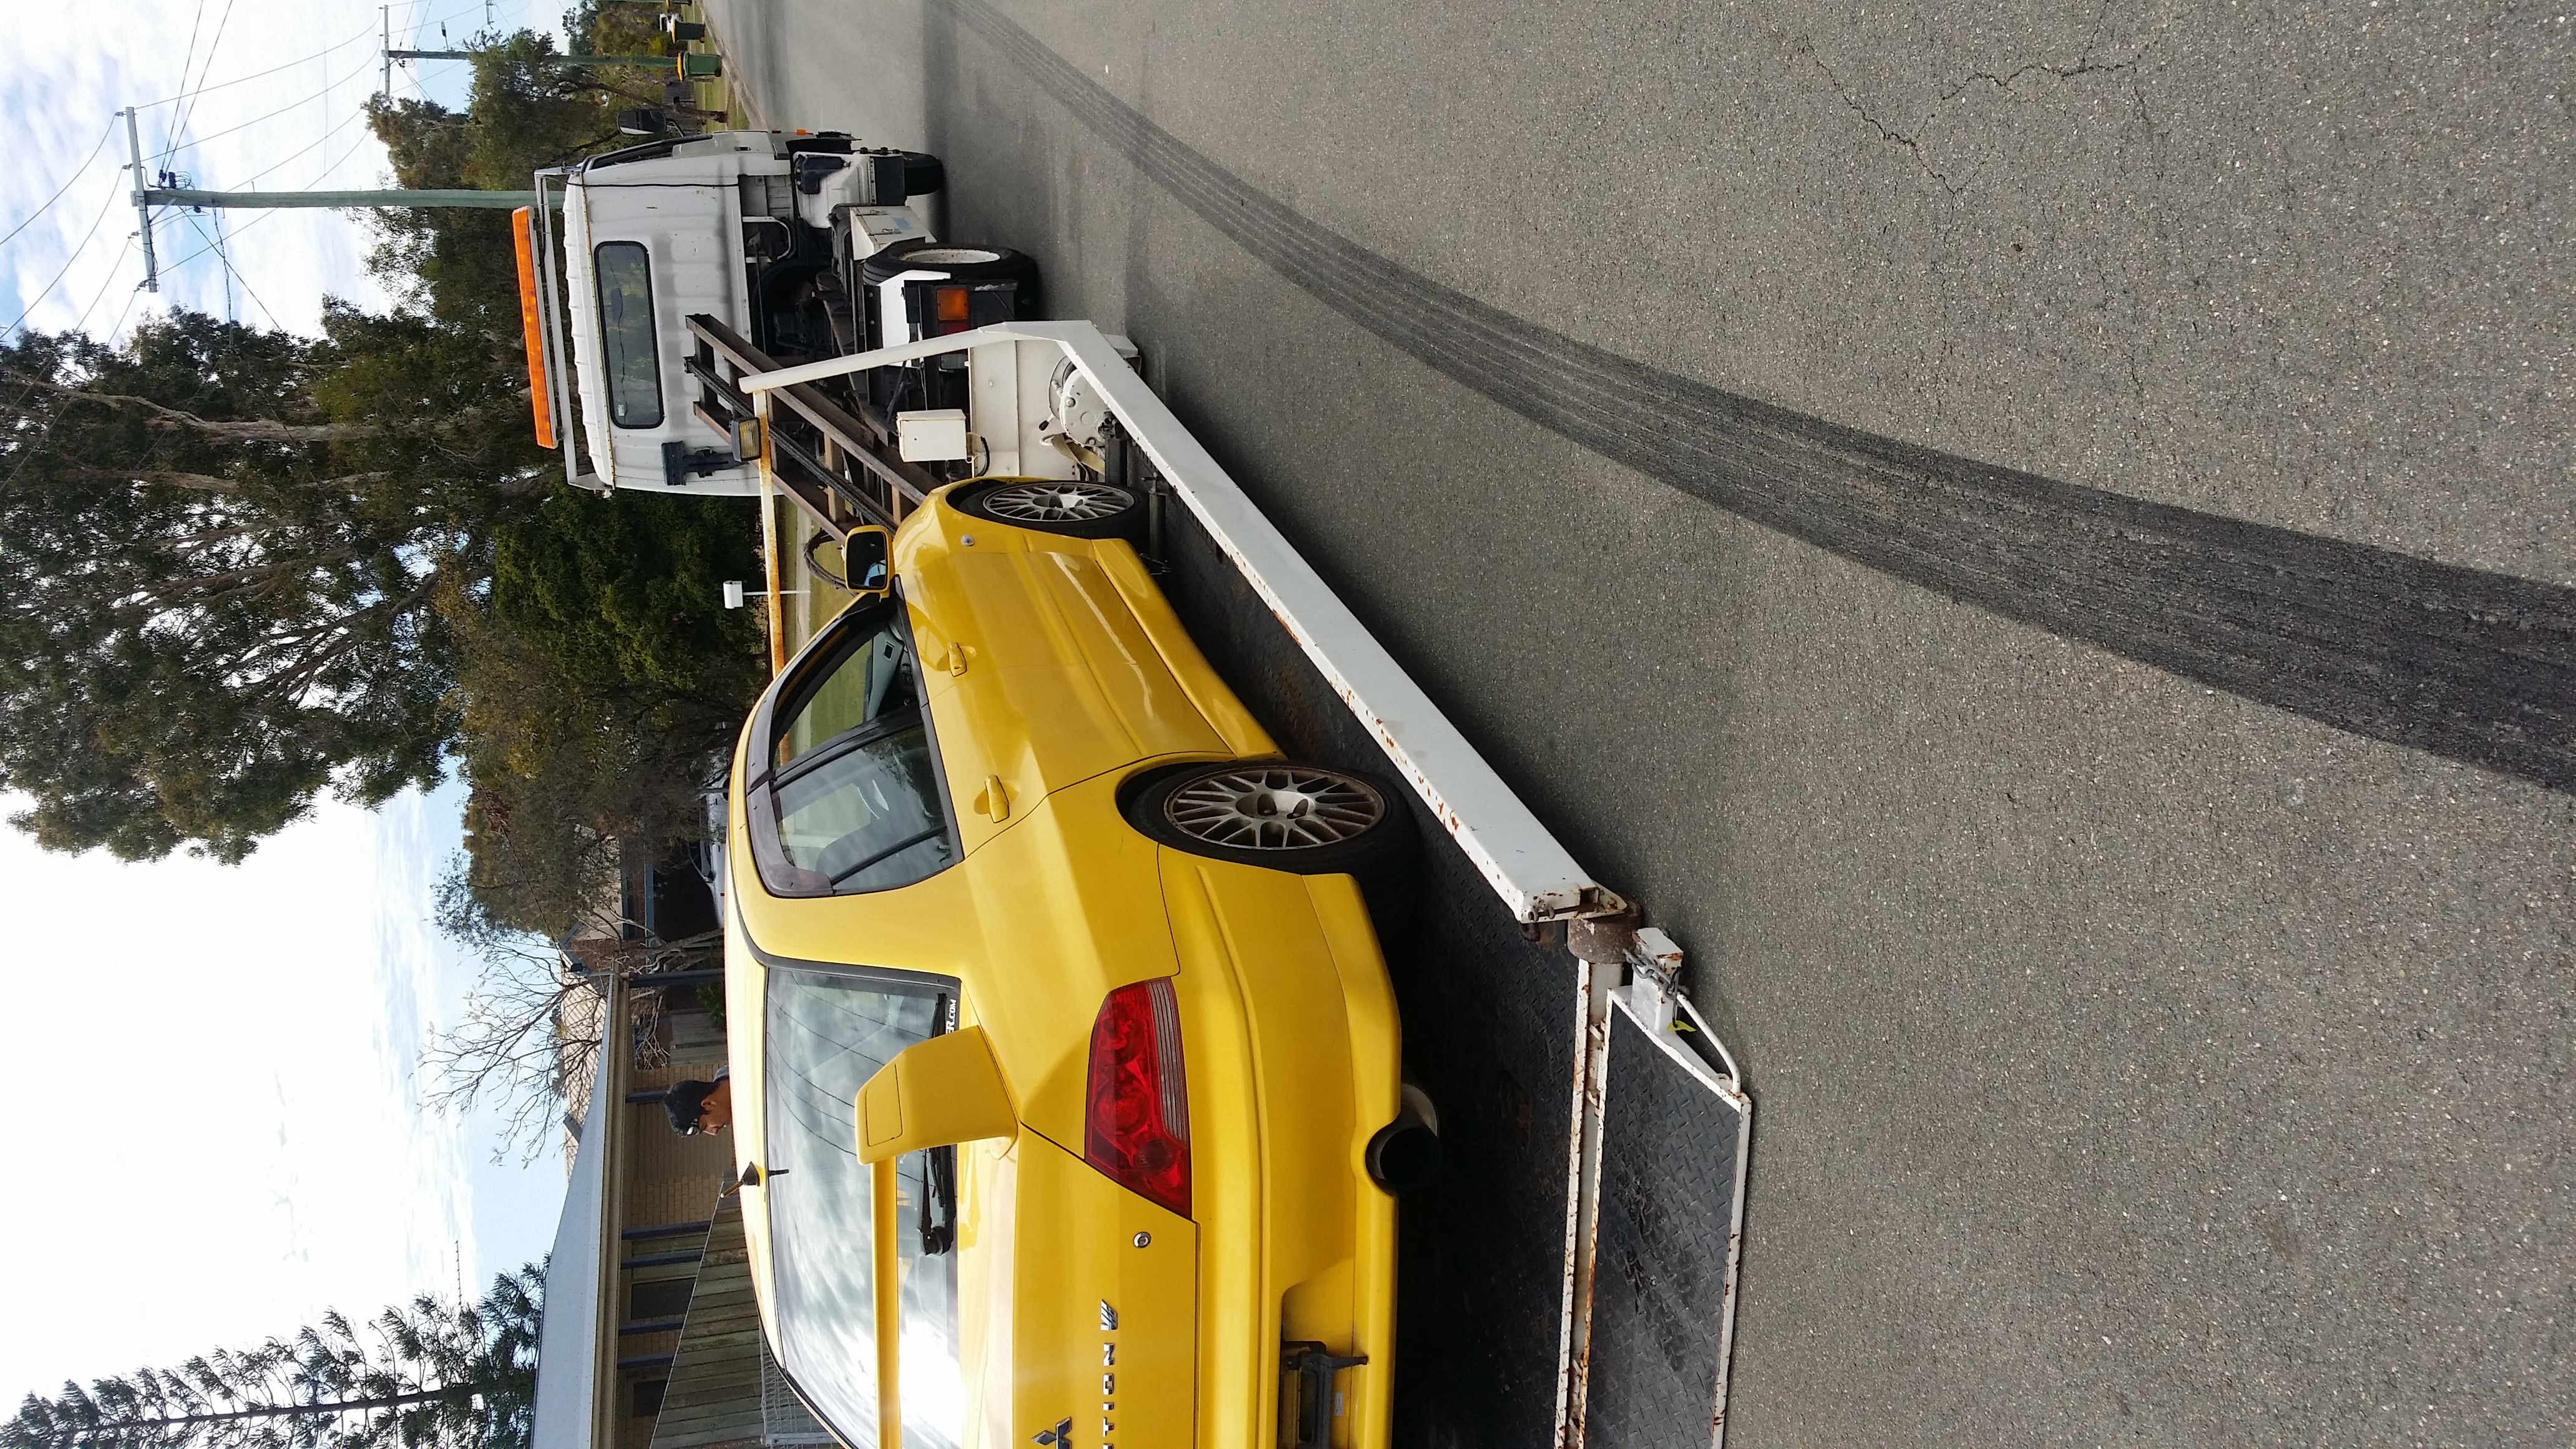 Tow Truck For Hire Cheap Towing Service Miscellaneous